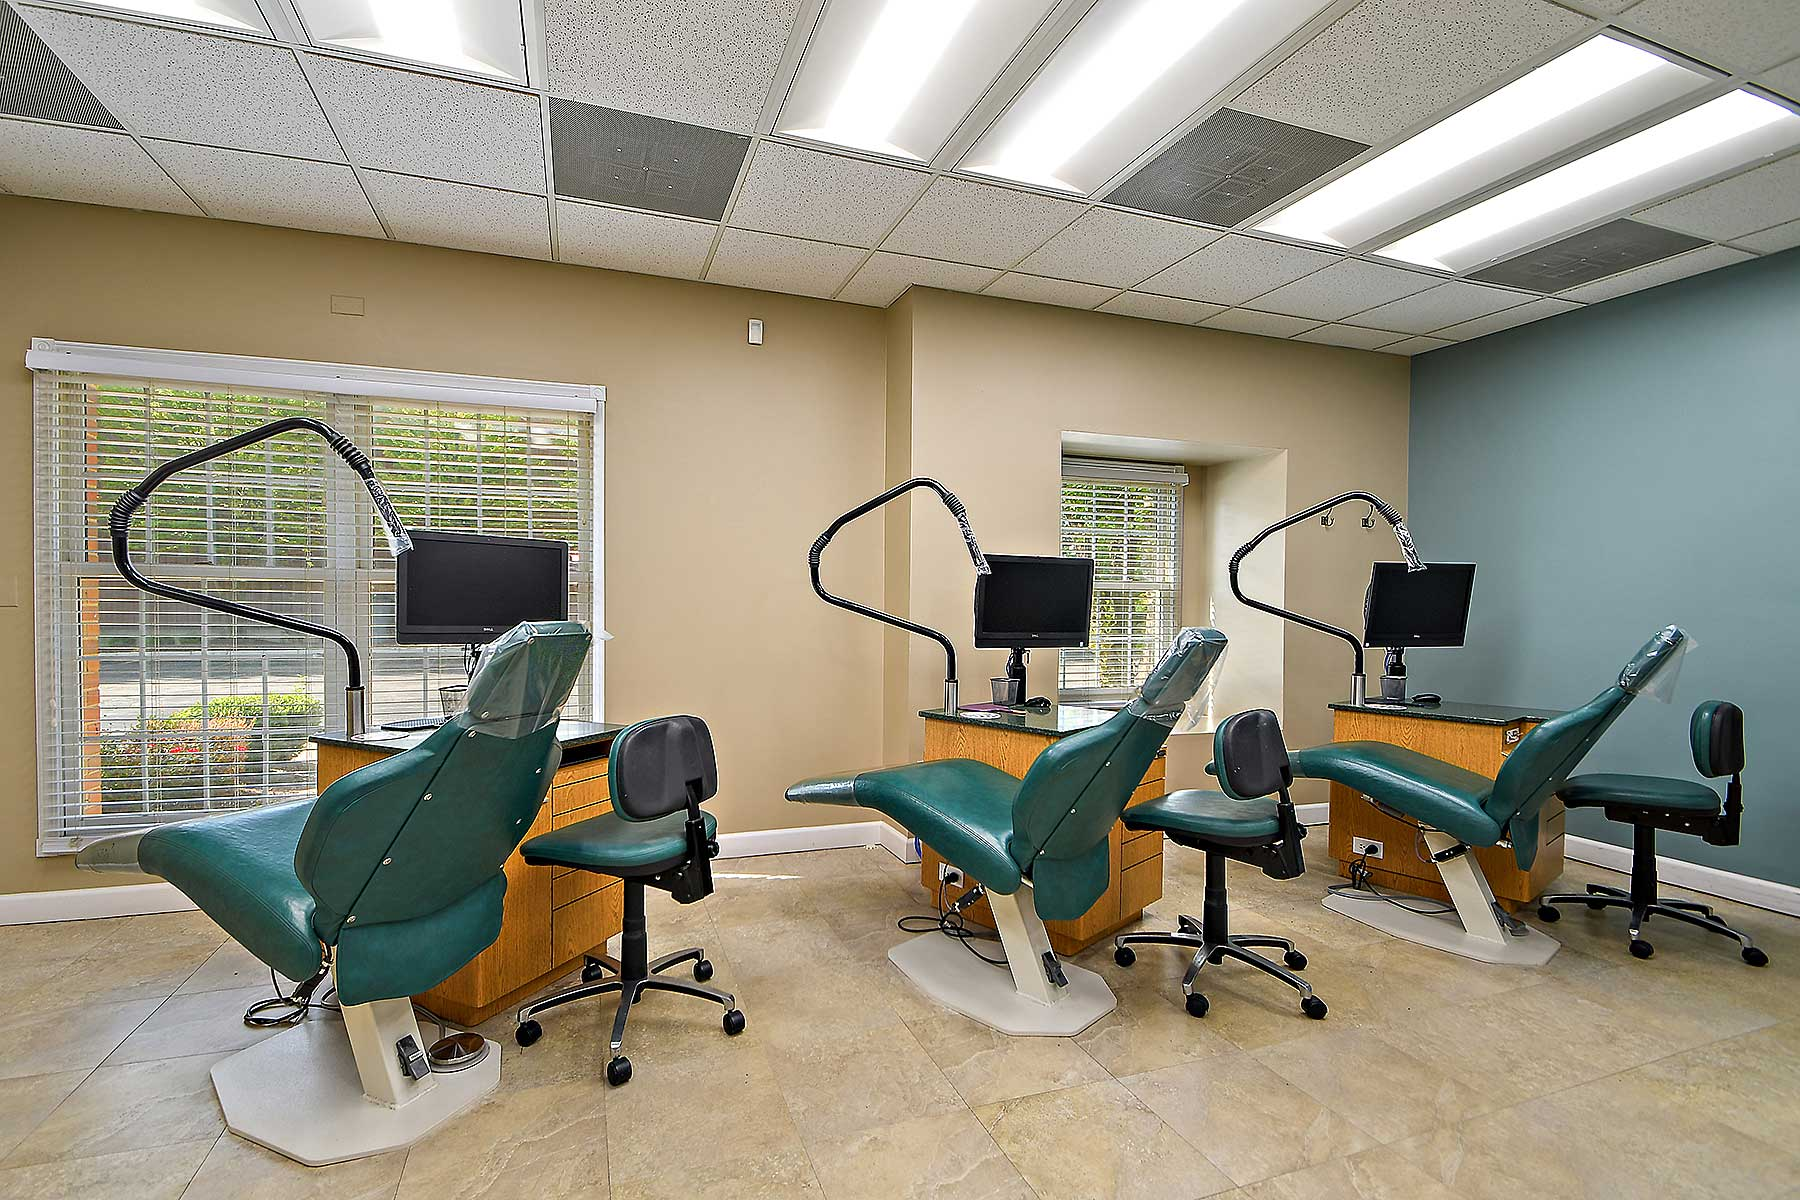 A large orthodontic patient room with three orthodontic treatment chairs lined up across the middle of the room. Each treatment chair has a doctor's station next to it, with a chair and computer.